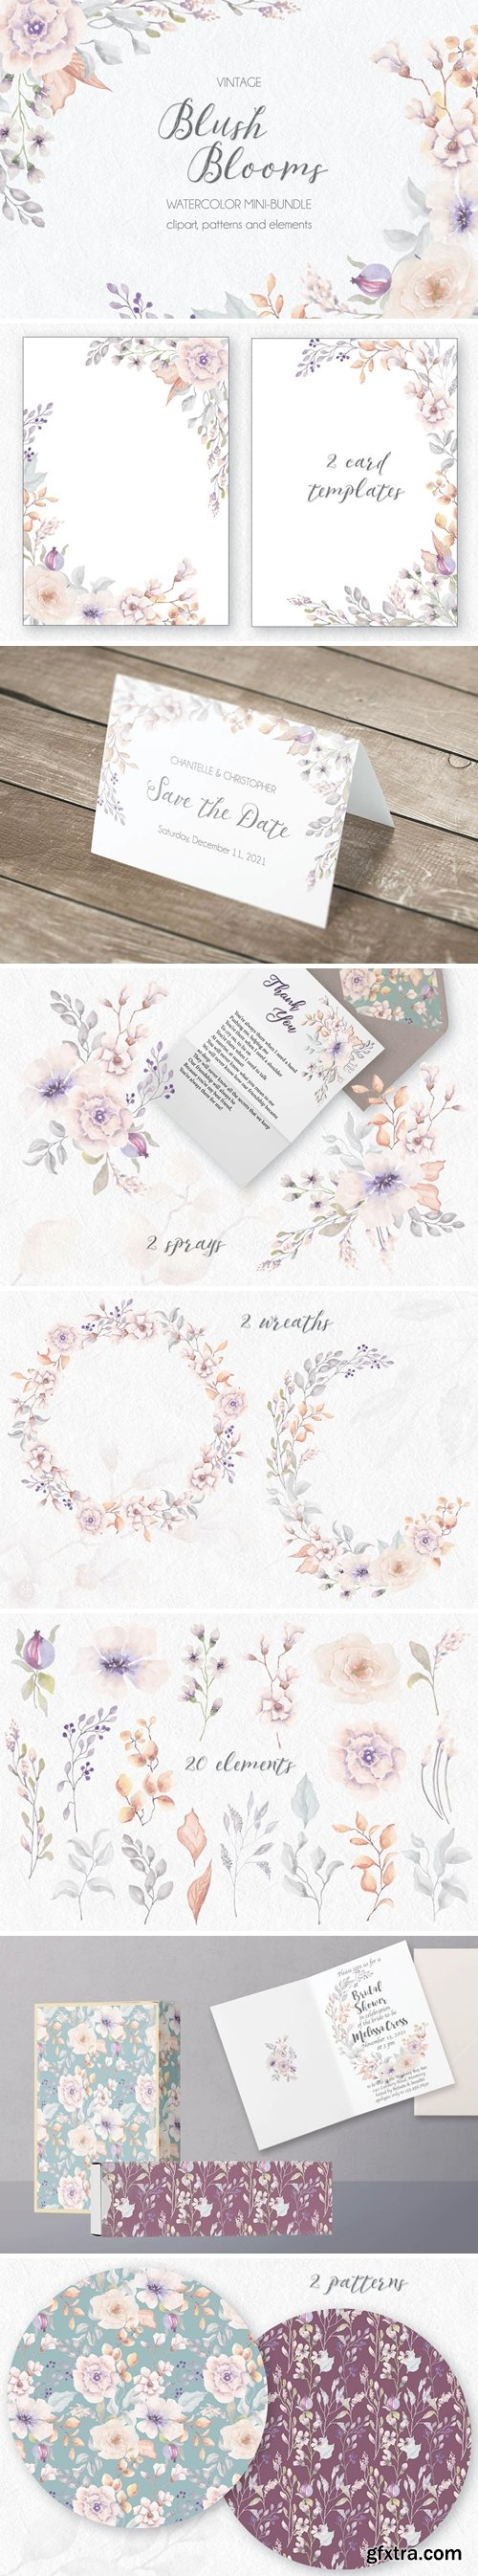 Vintage Blush Blooms in Watercolor